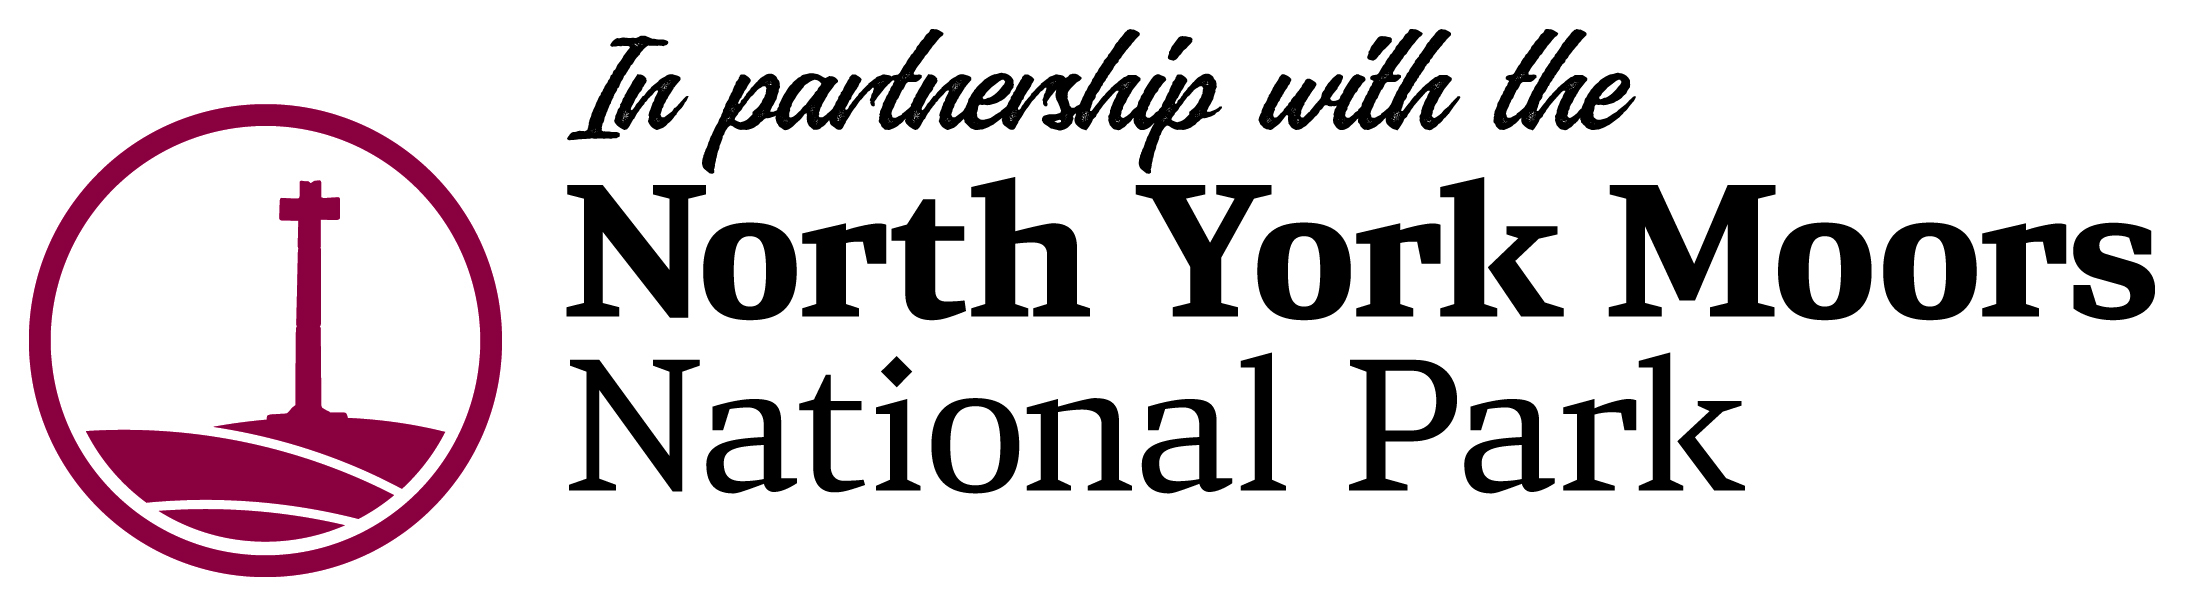 in partnership with NYMNP